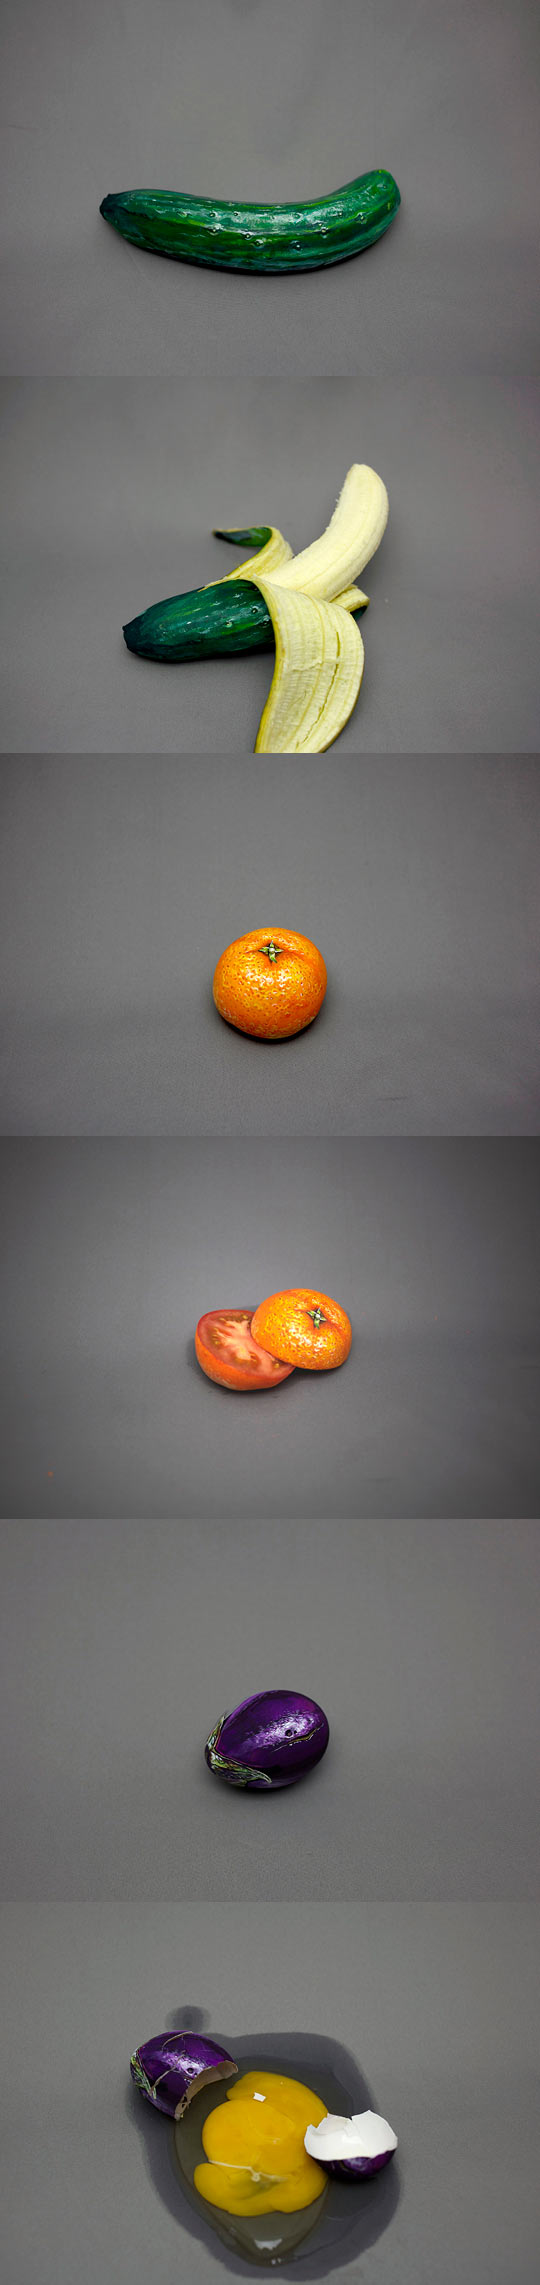 funny-cool-food-painted-art-disguise